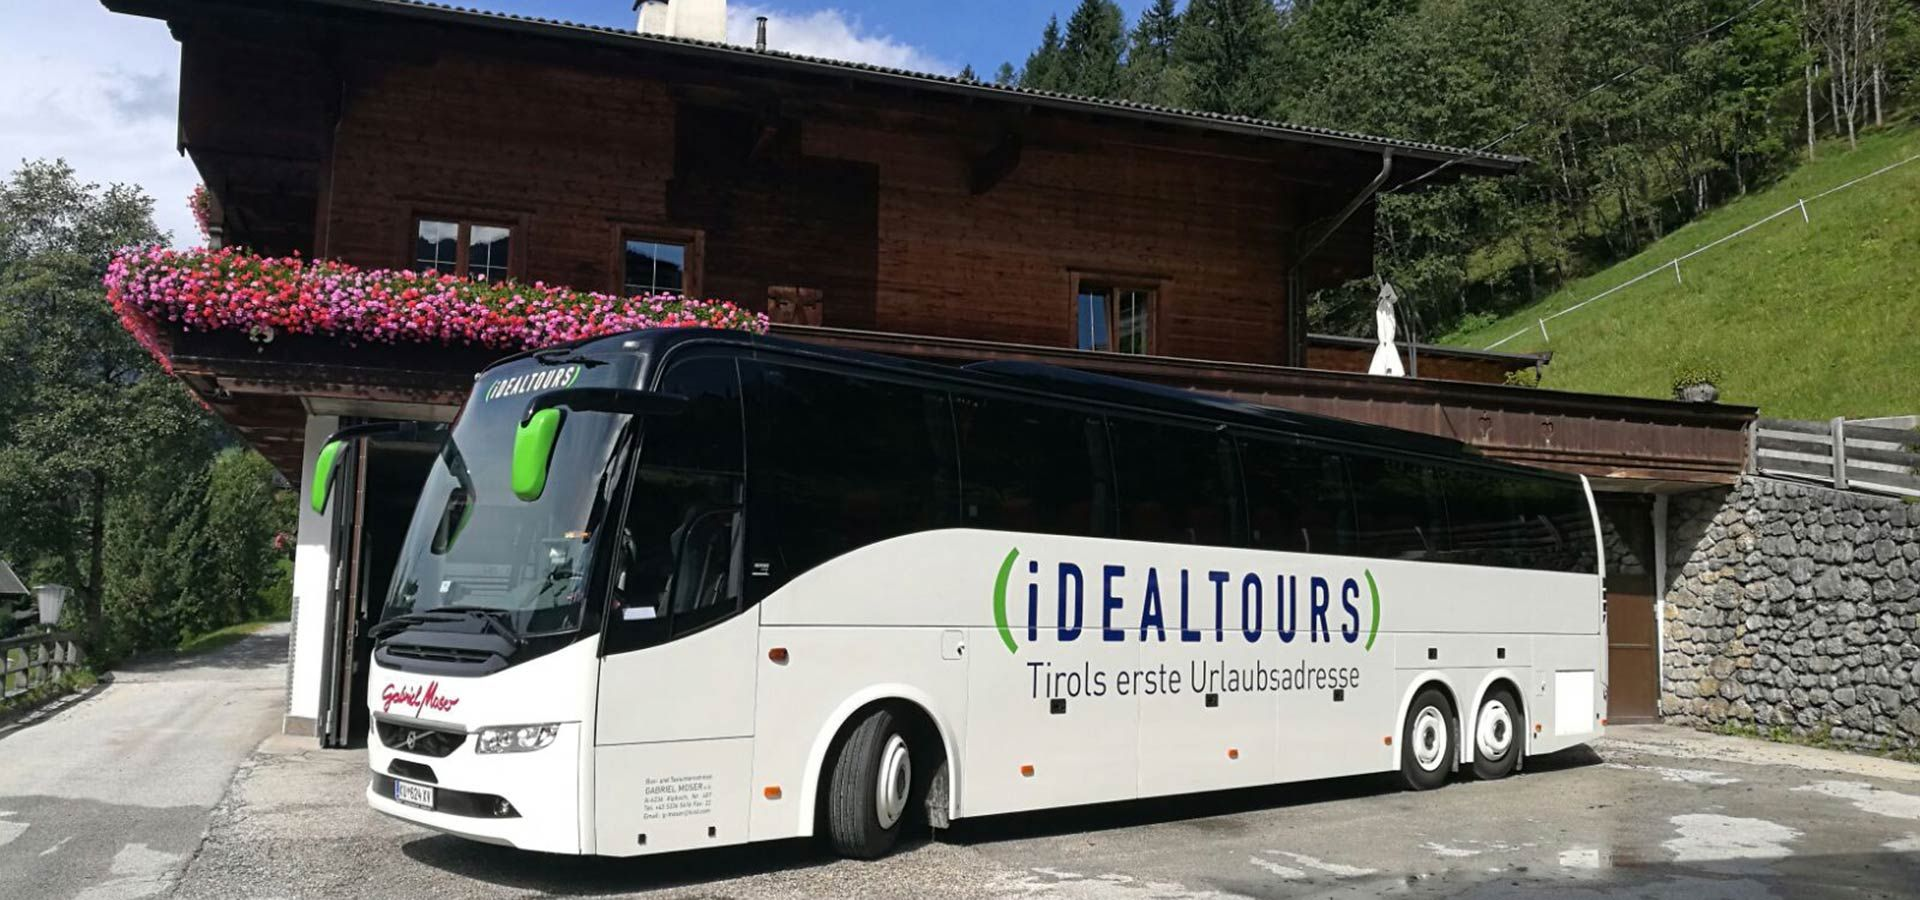 Idealtours Bus